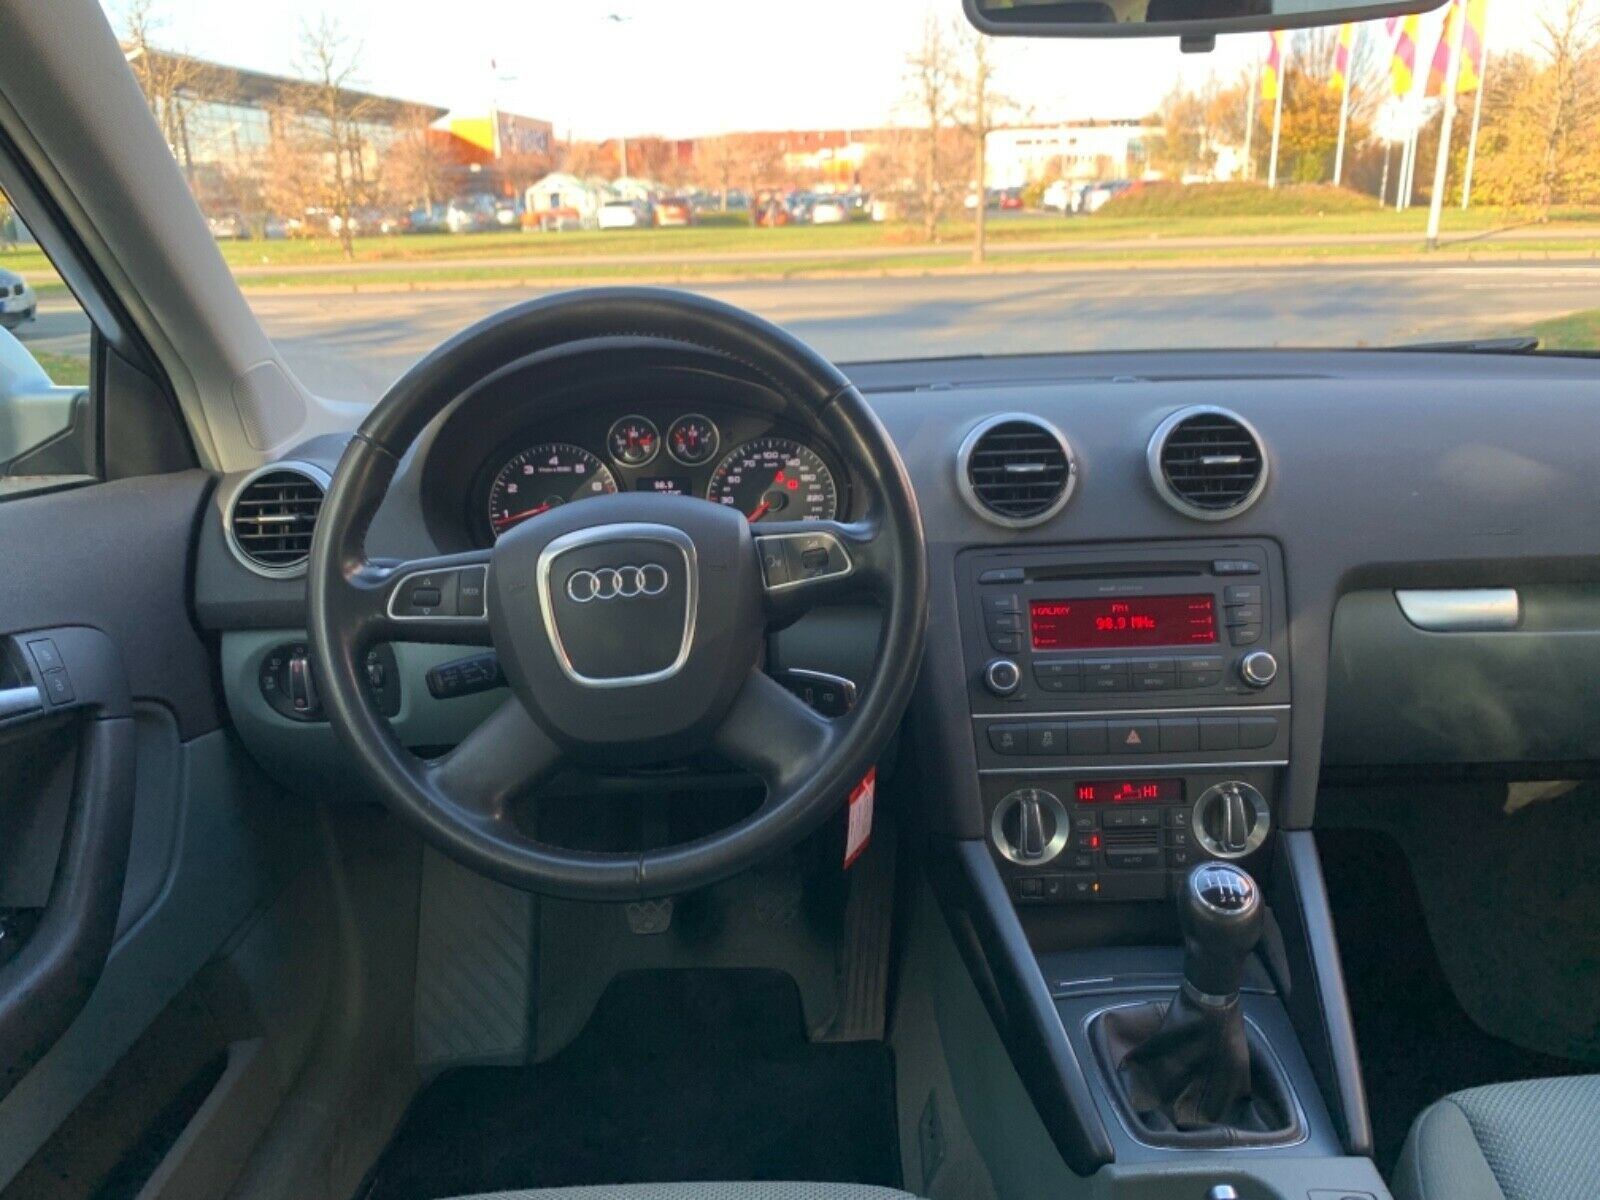 AUDI A3 Sportback 1.2 TFSI Attraction*2.Hand*Sitzhei*